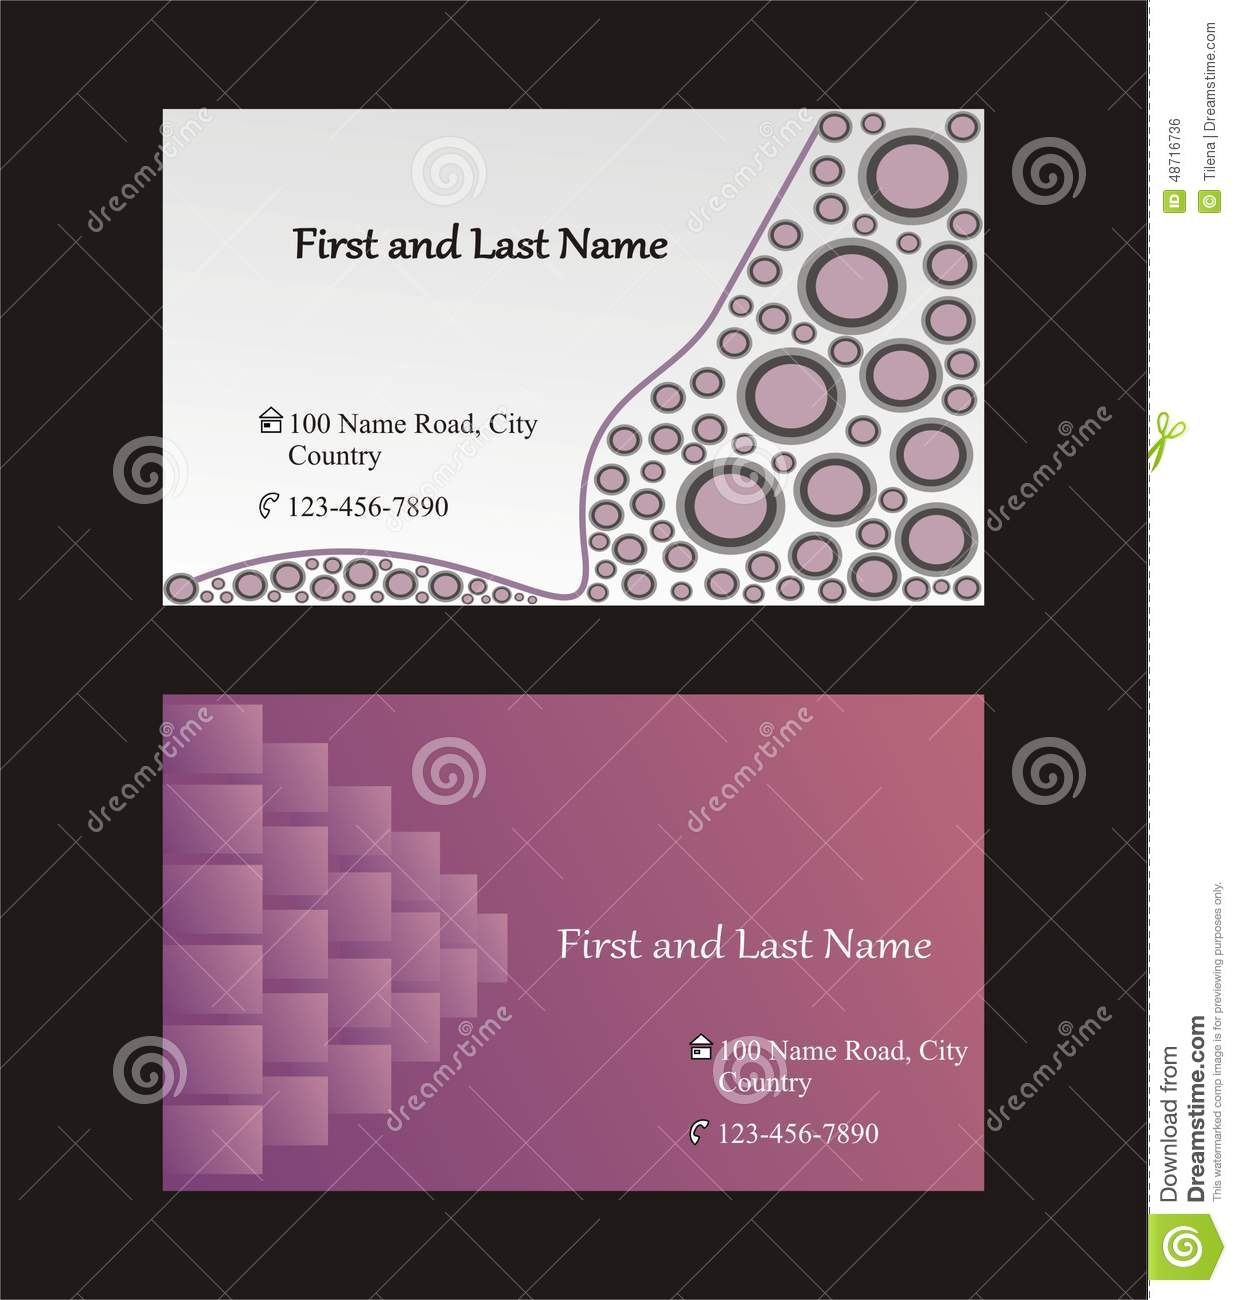 2 sided business card template images free business cards single sided business cards template stock vector image 48716736 royalty free vector download single sided business magicingreecefo Choice Image